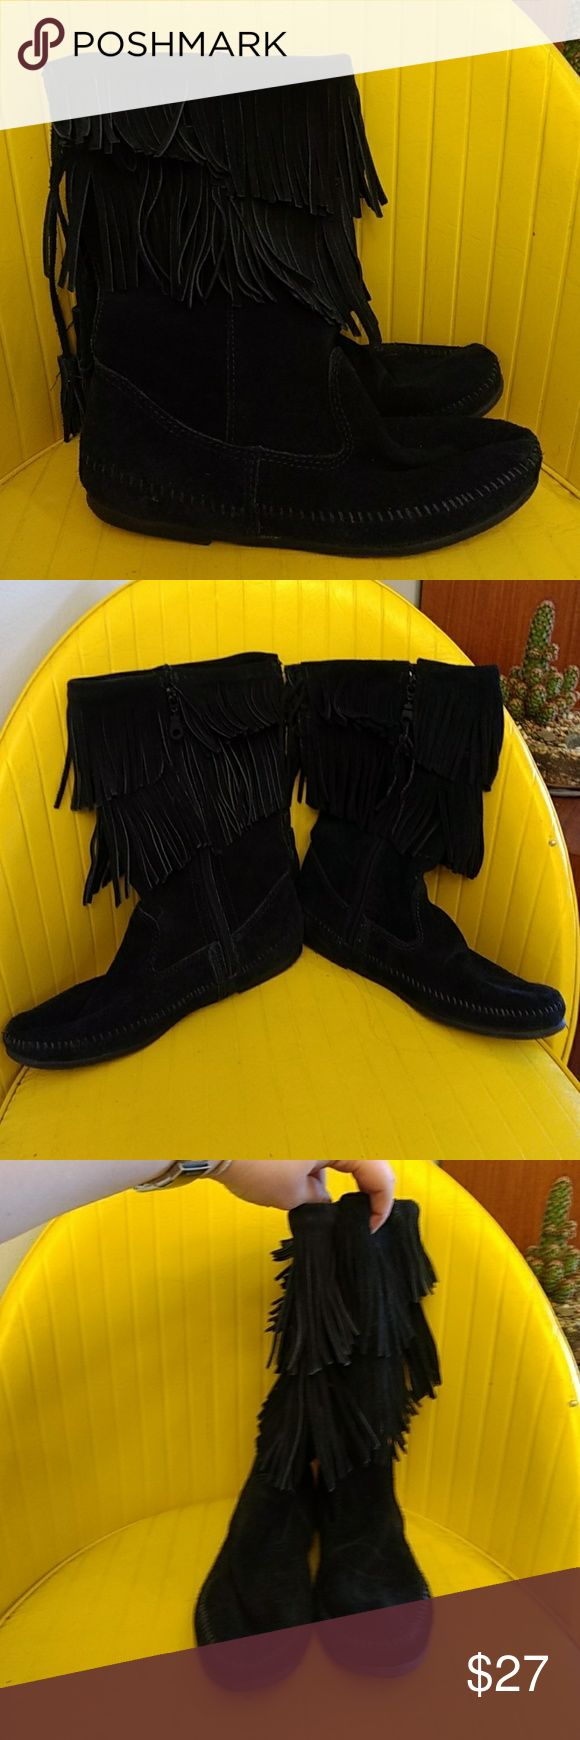 Minnetonka Mid Calf Boots. Black suede leather Minnetonka mid-calf boots. Two tiers of Fringe. Zip up on inside of foot for easy on and off. Lace-up detail on back with tassels. Gently used only worn a handful of times. Size 9. Minnetonka Shoes Moccasins